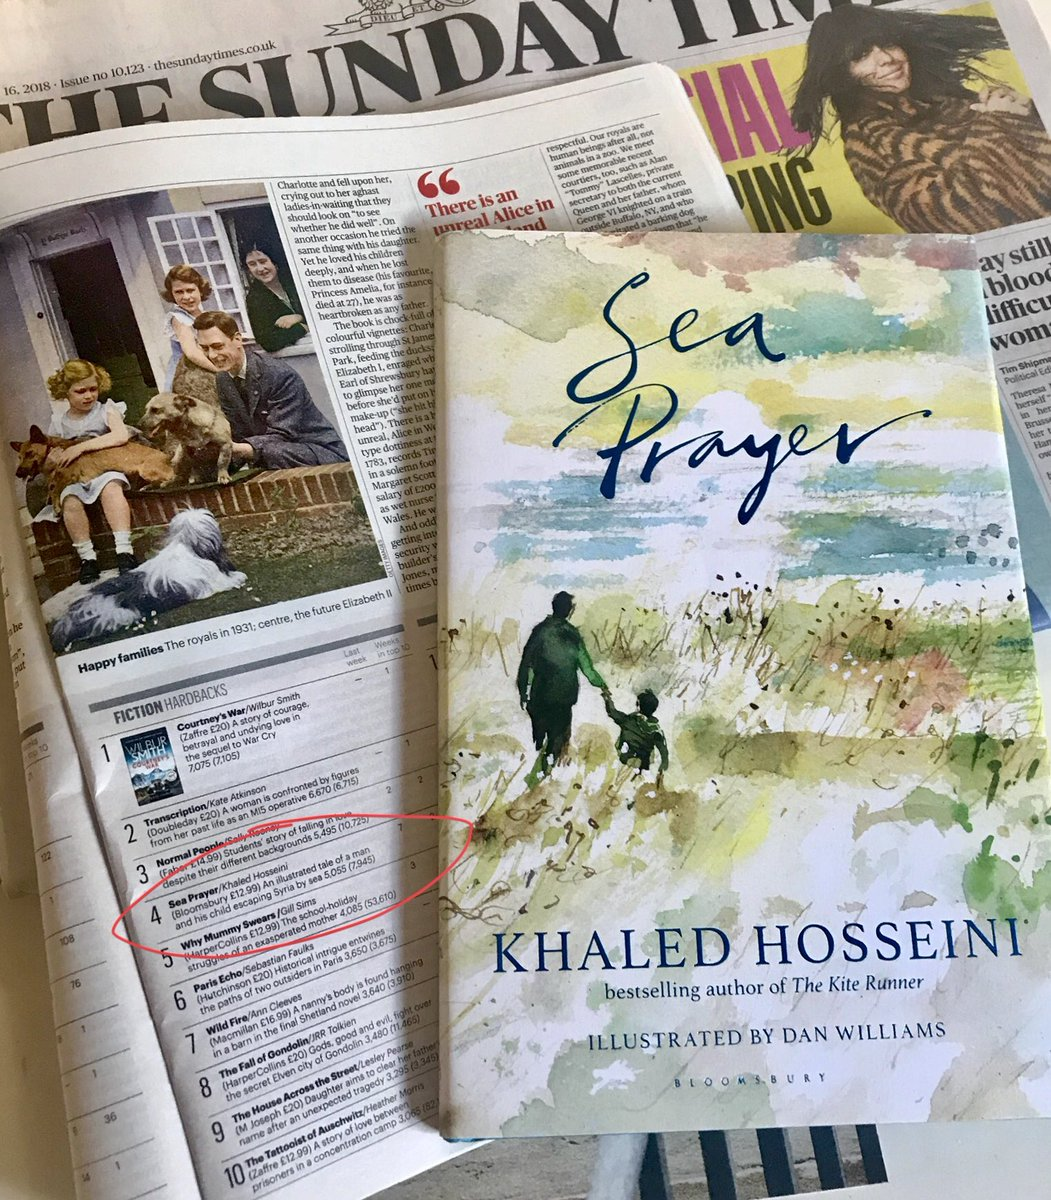 Khaled HosseiniVerified account